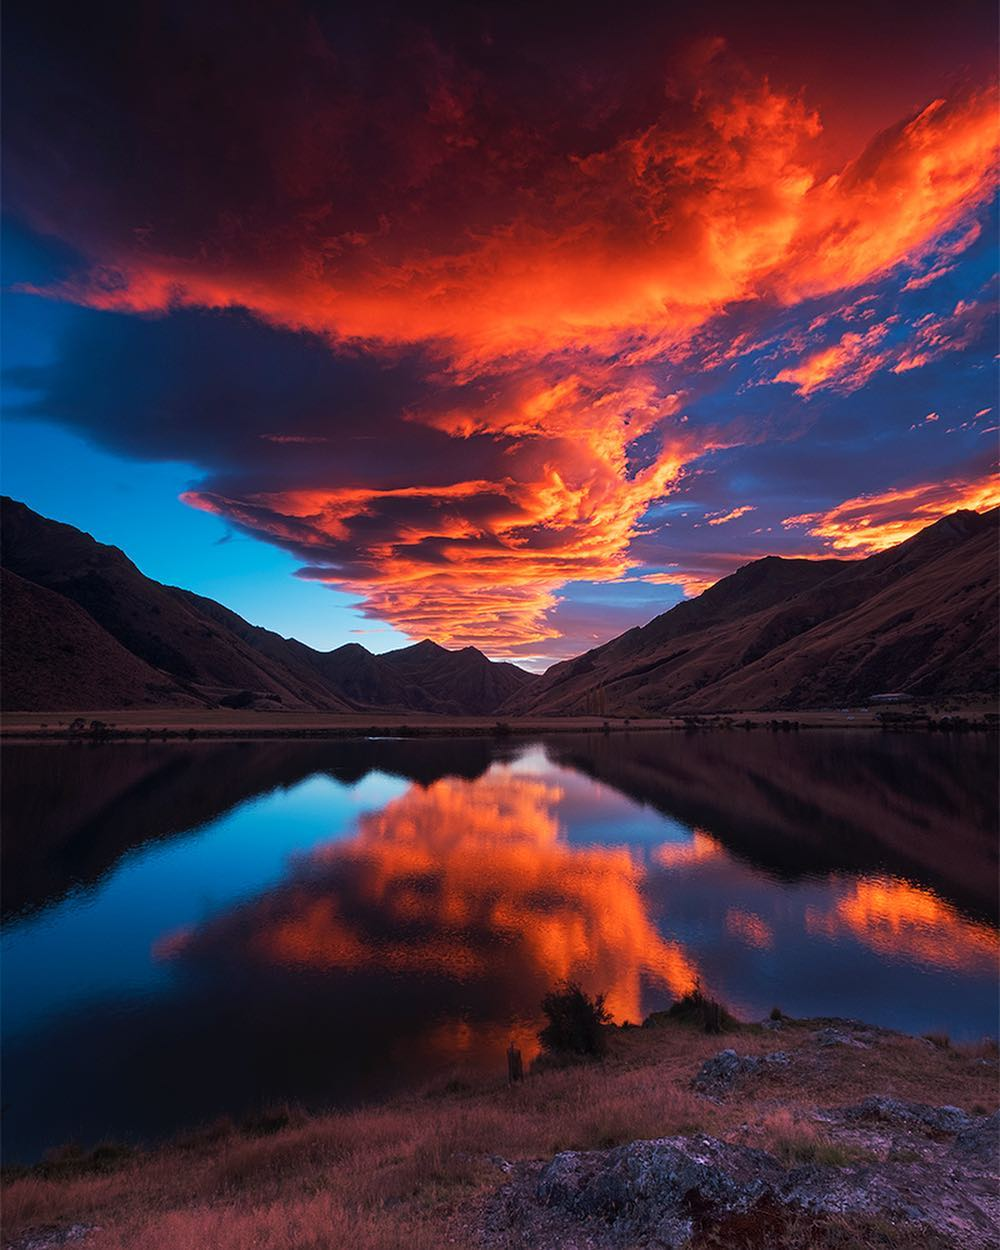 Amazing Pictures: Amazing Nature Landscapes Of New Zealand By Nick Crarer